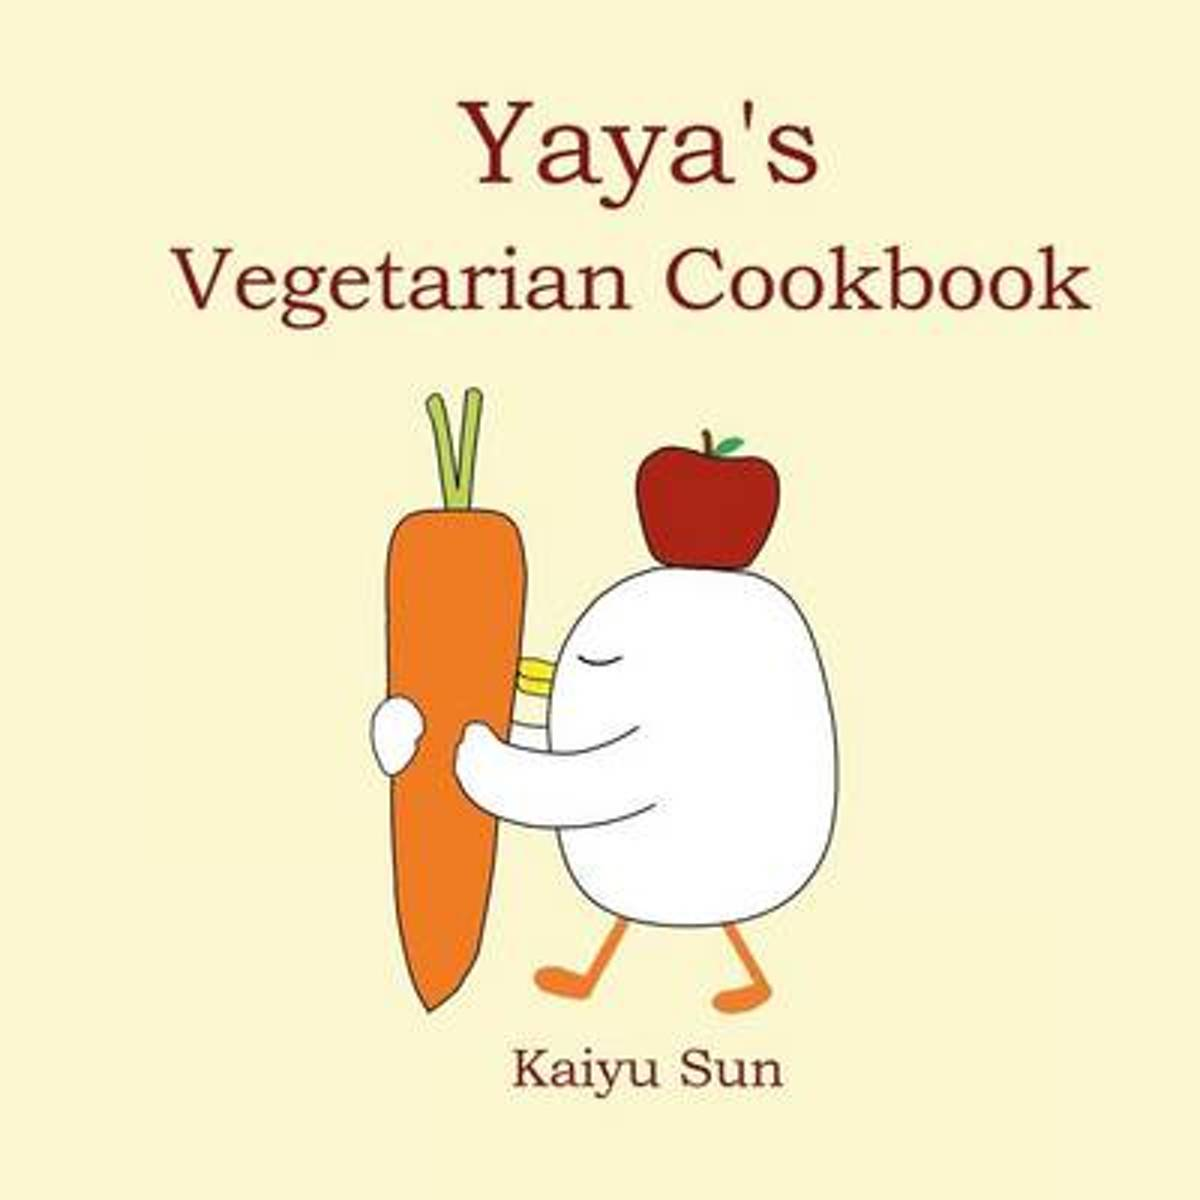 Yaya's Vegetarian Cookbook